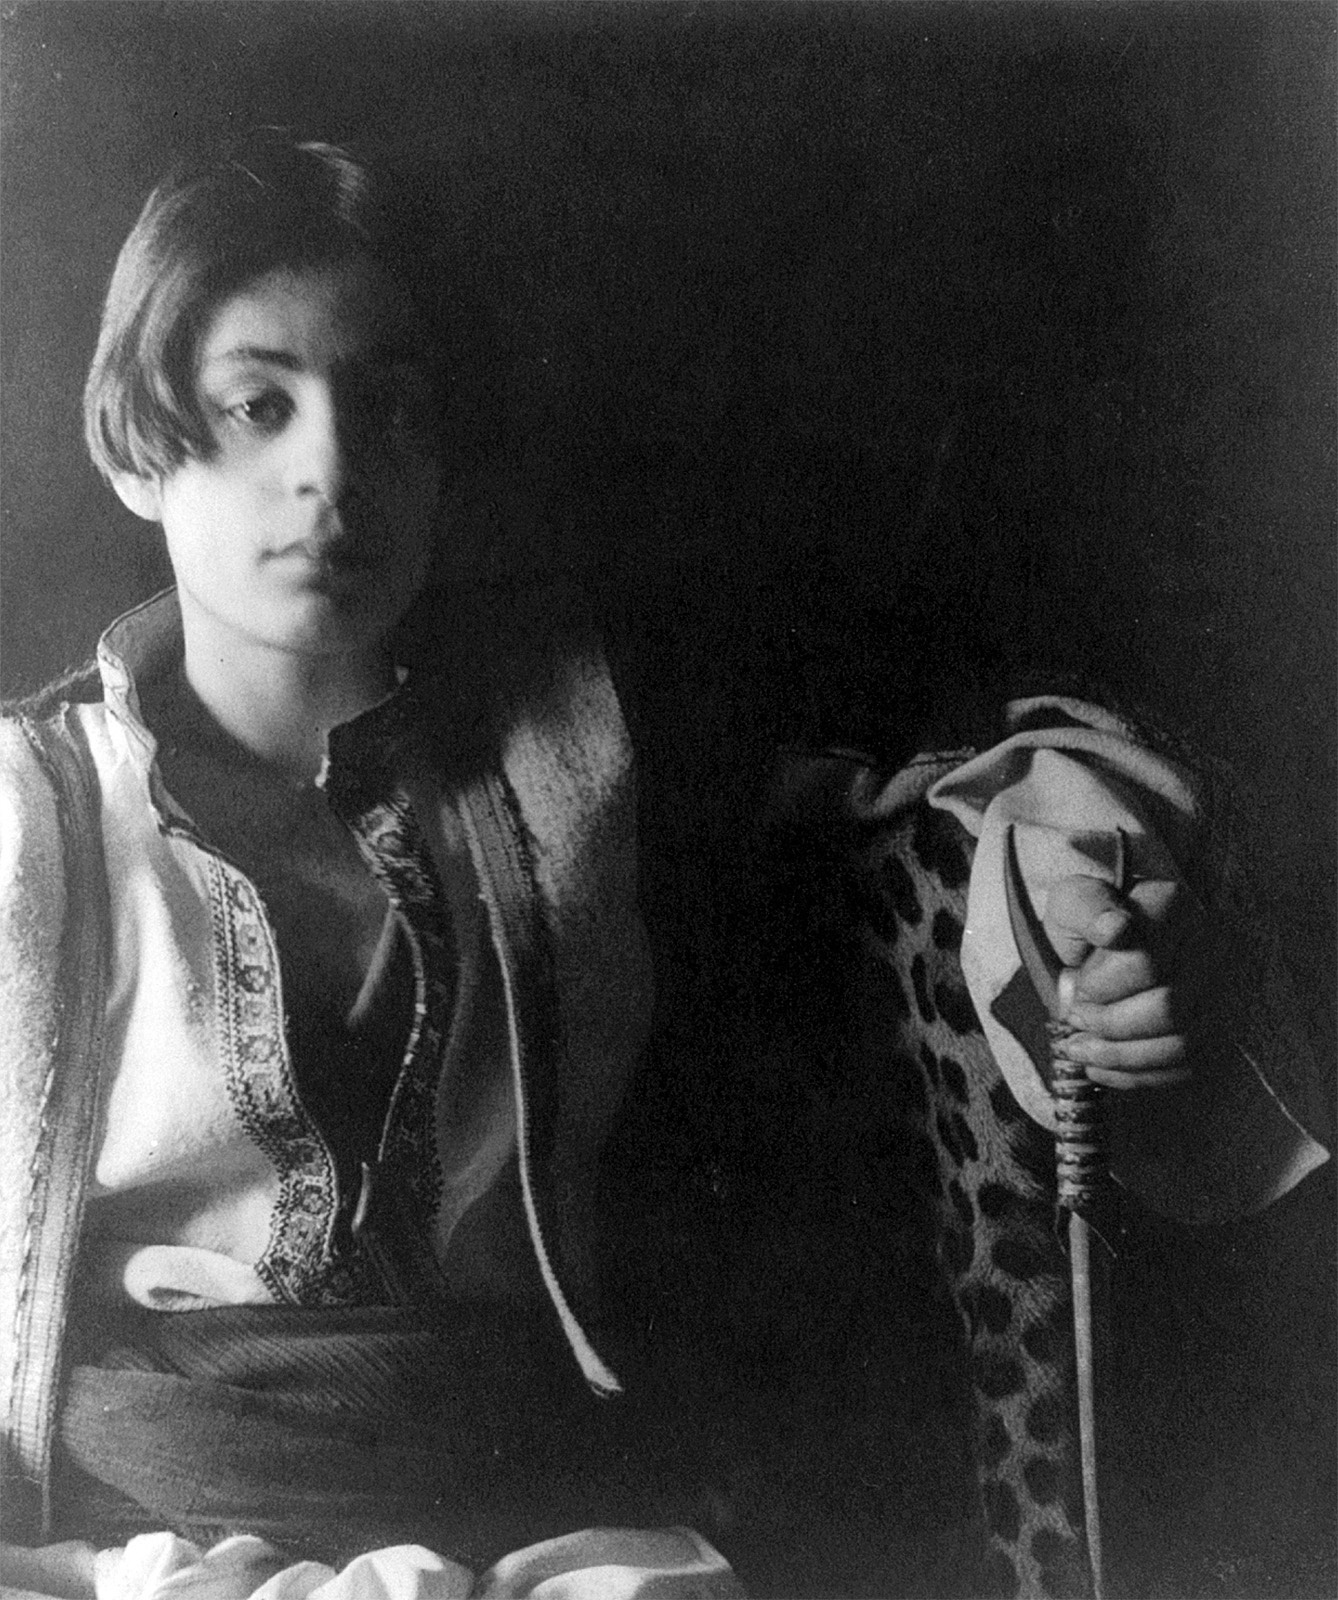 The portrait of 15-year old Khalil Gibran made by Fred Holland Day